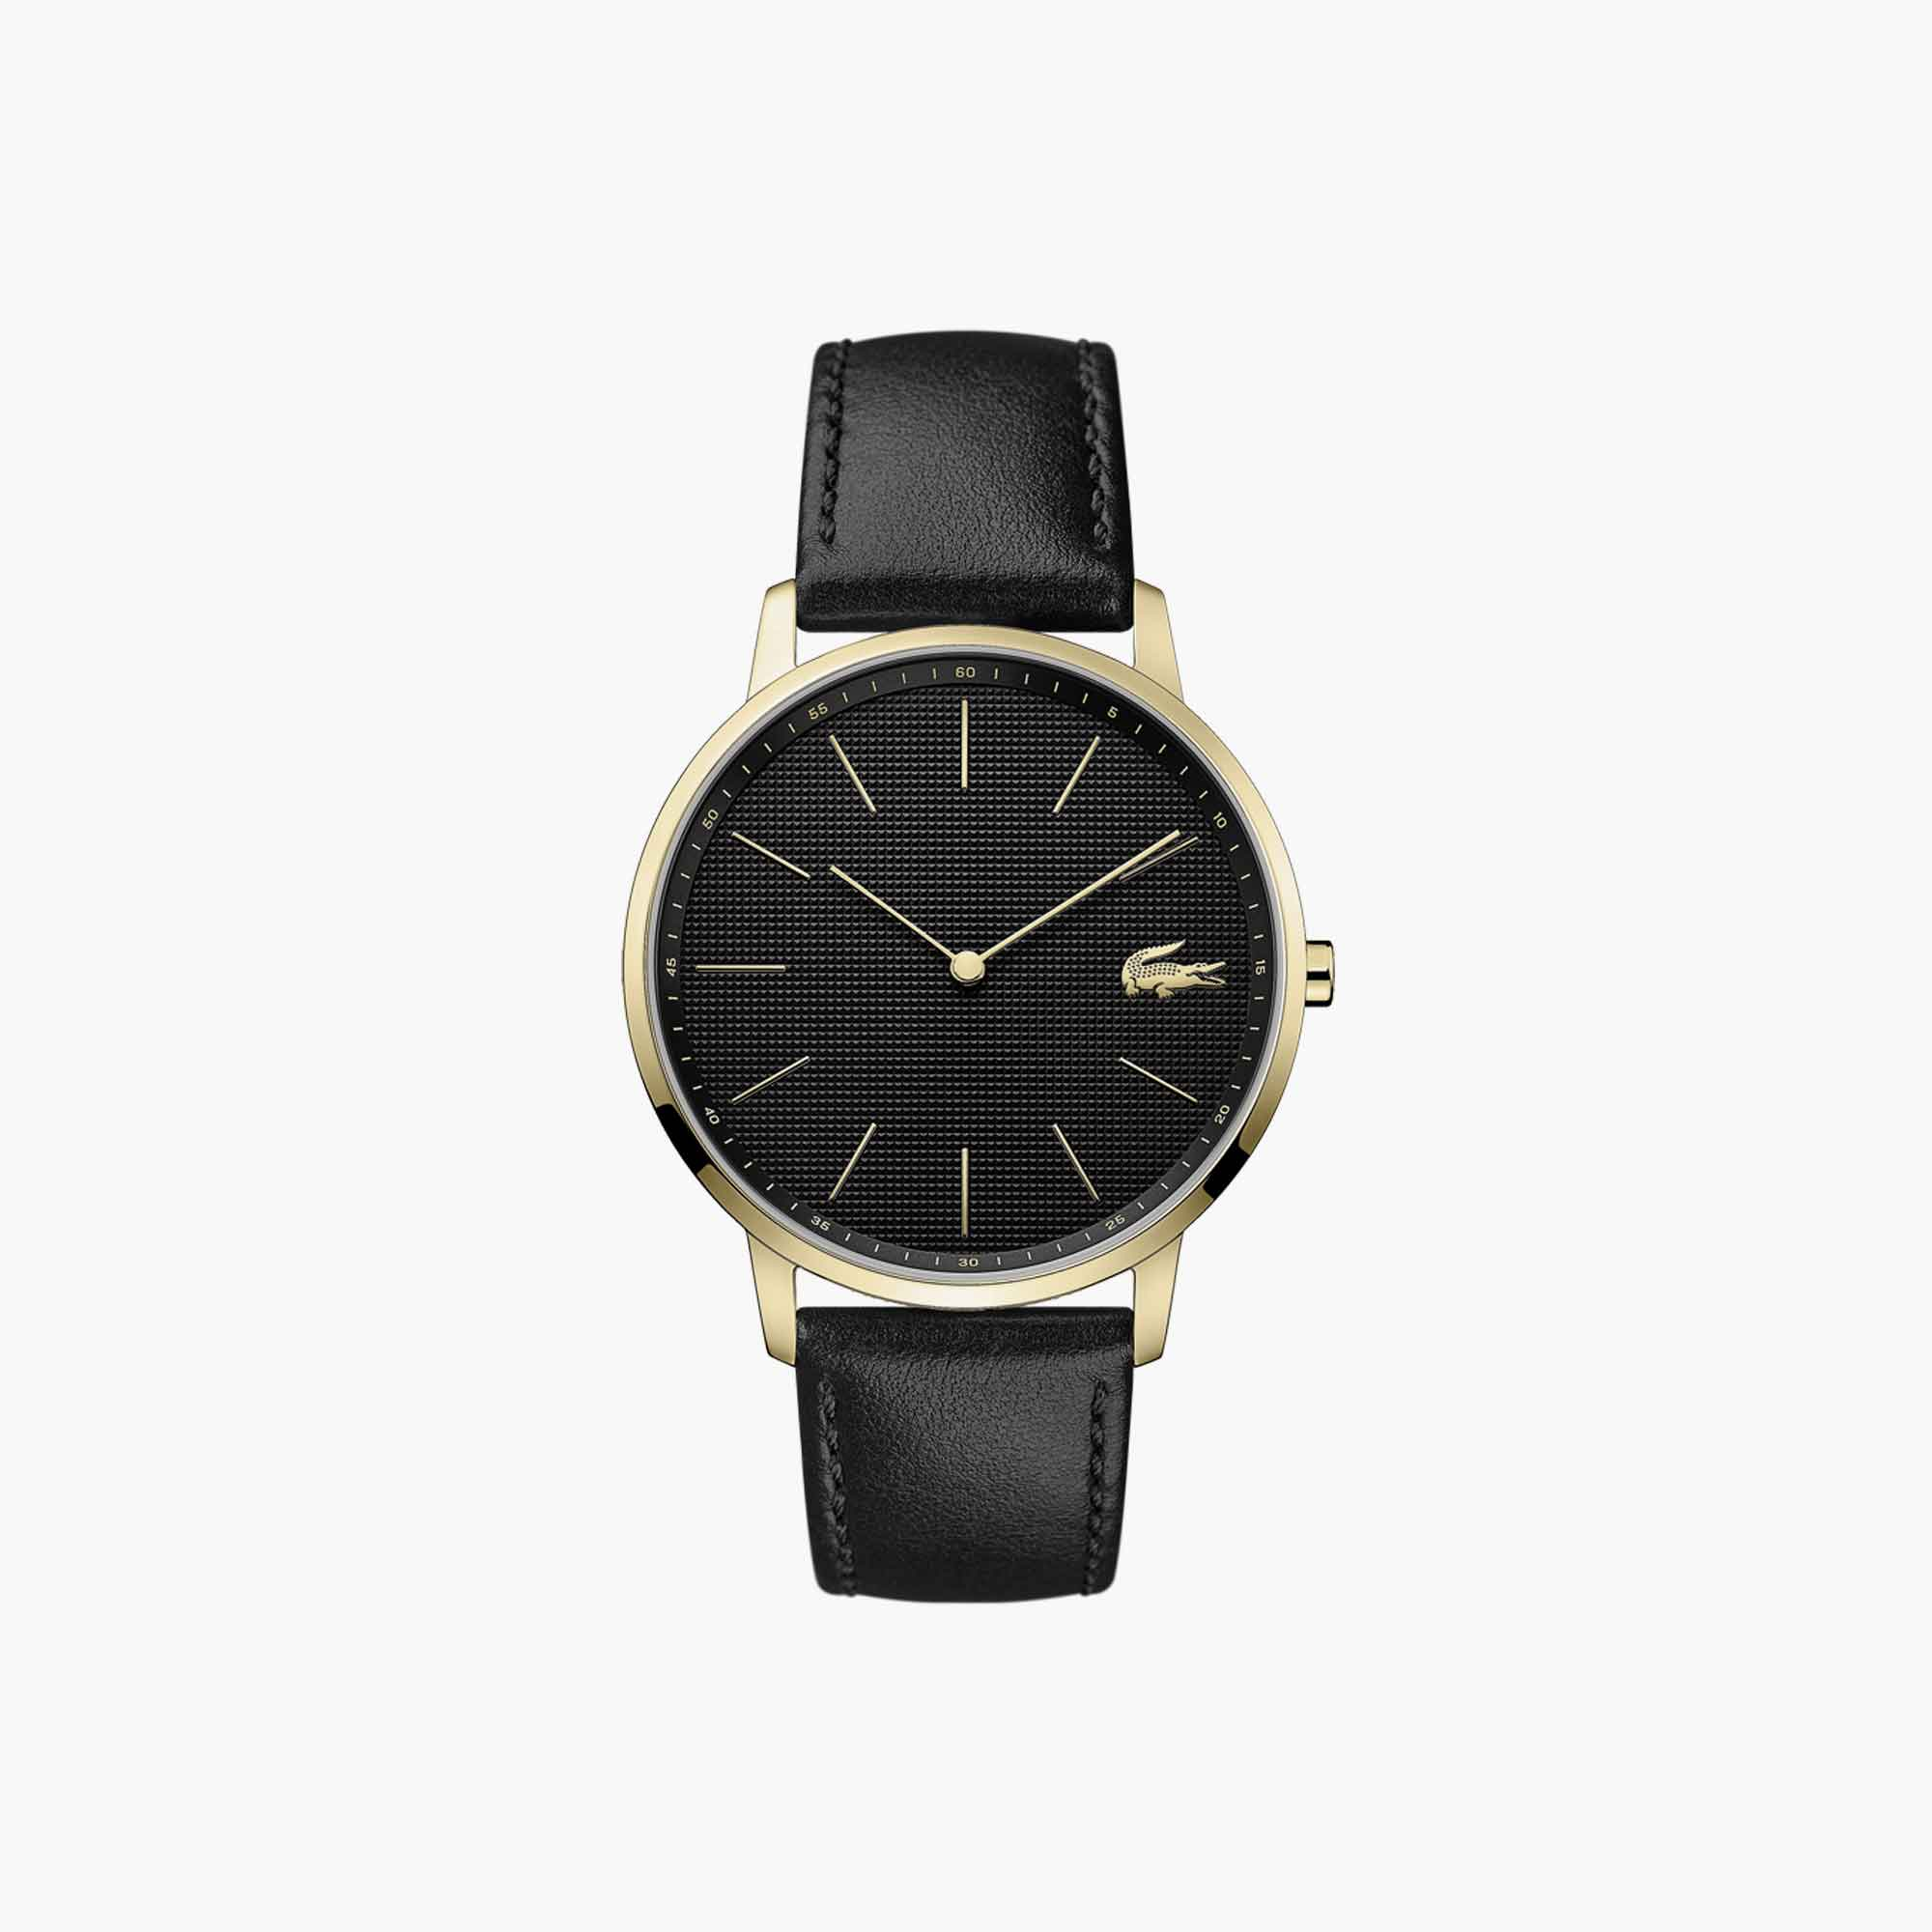 Gents Moon Watch with Black Leather Strap and Black Dial